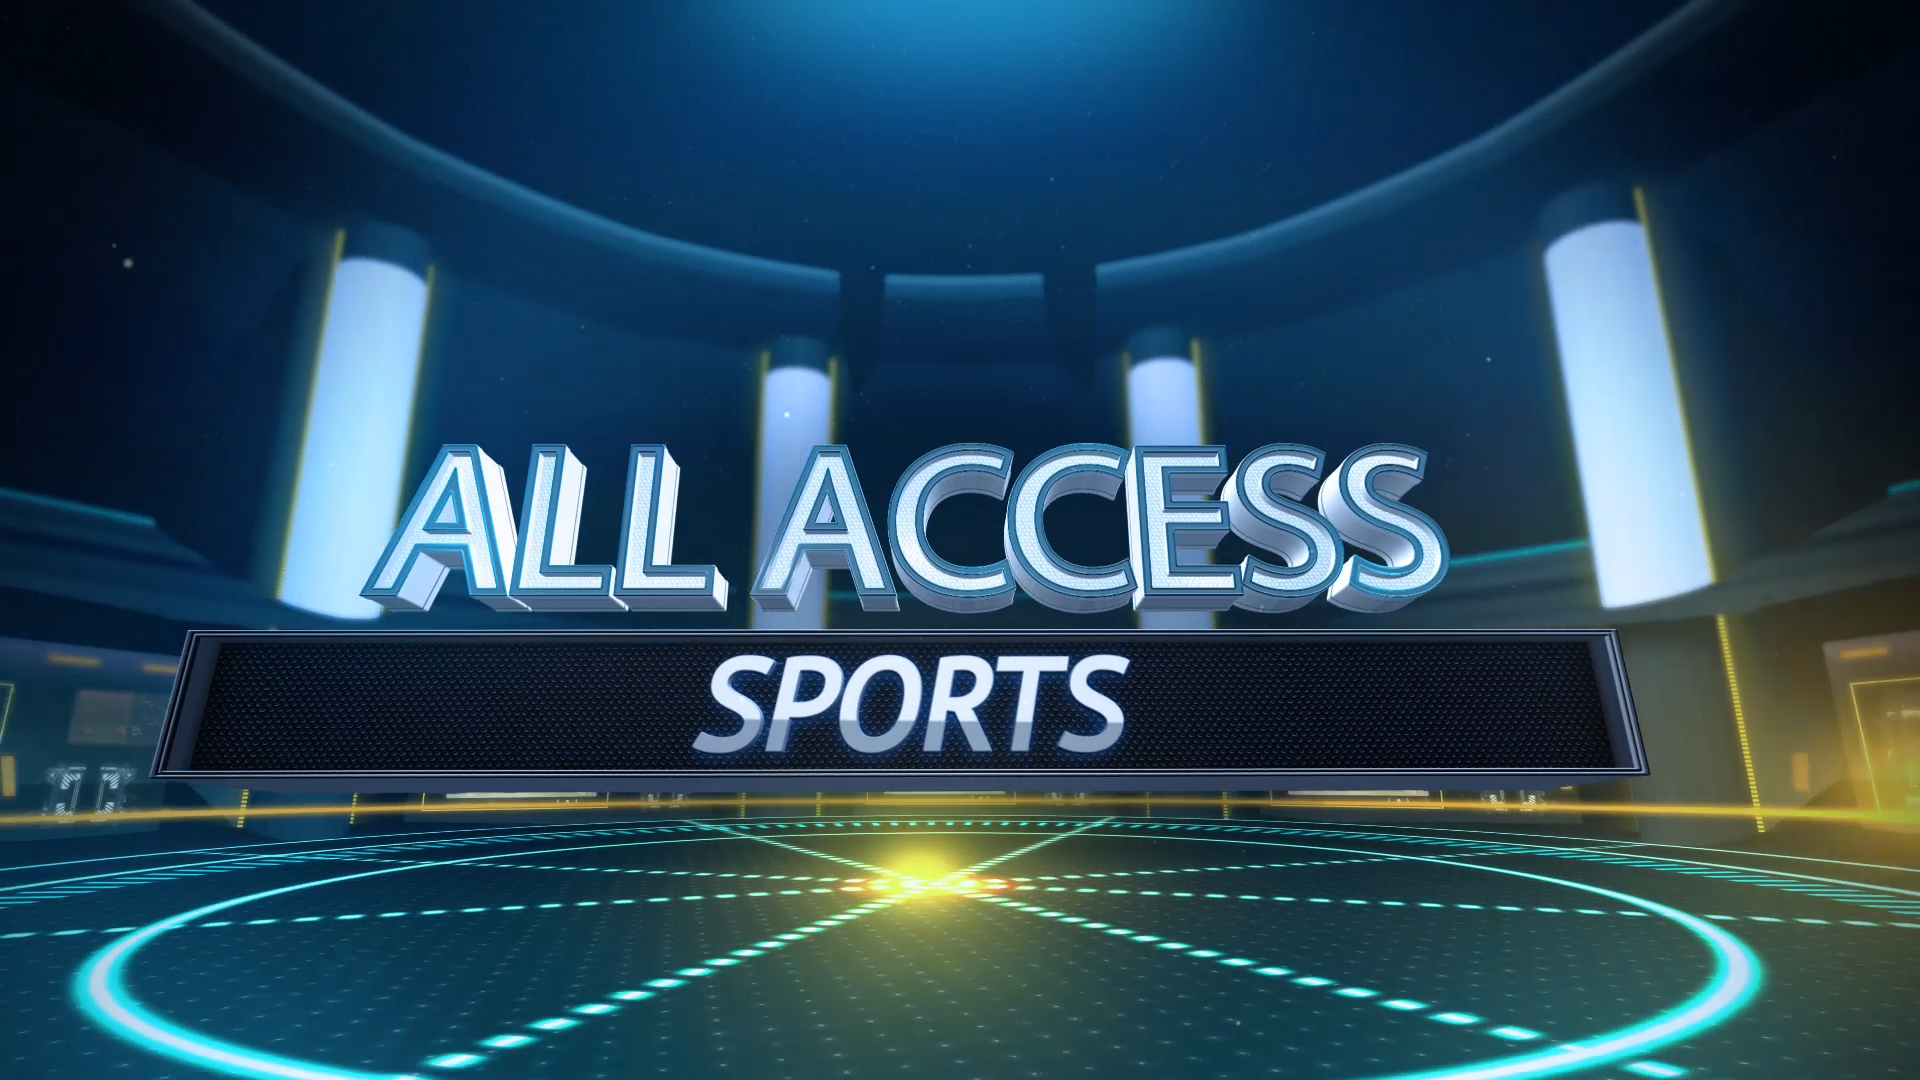 All Access Sports